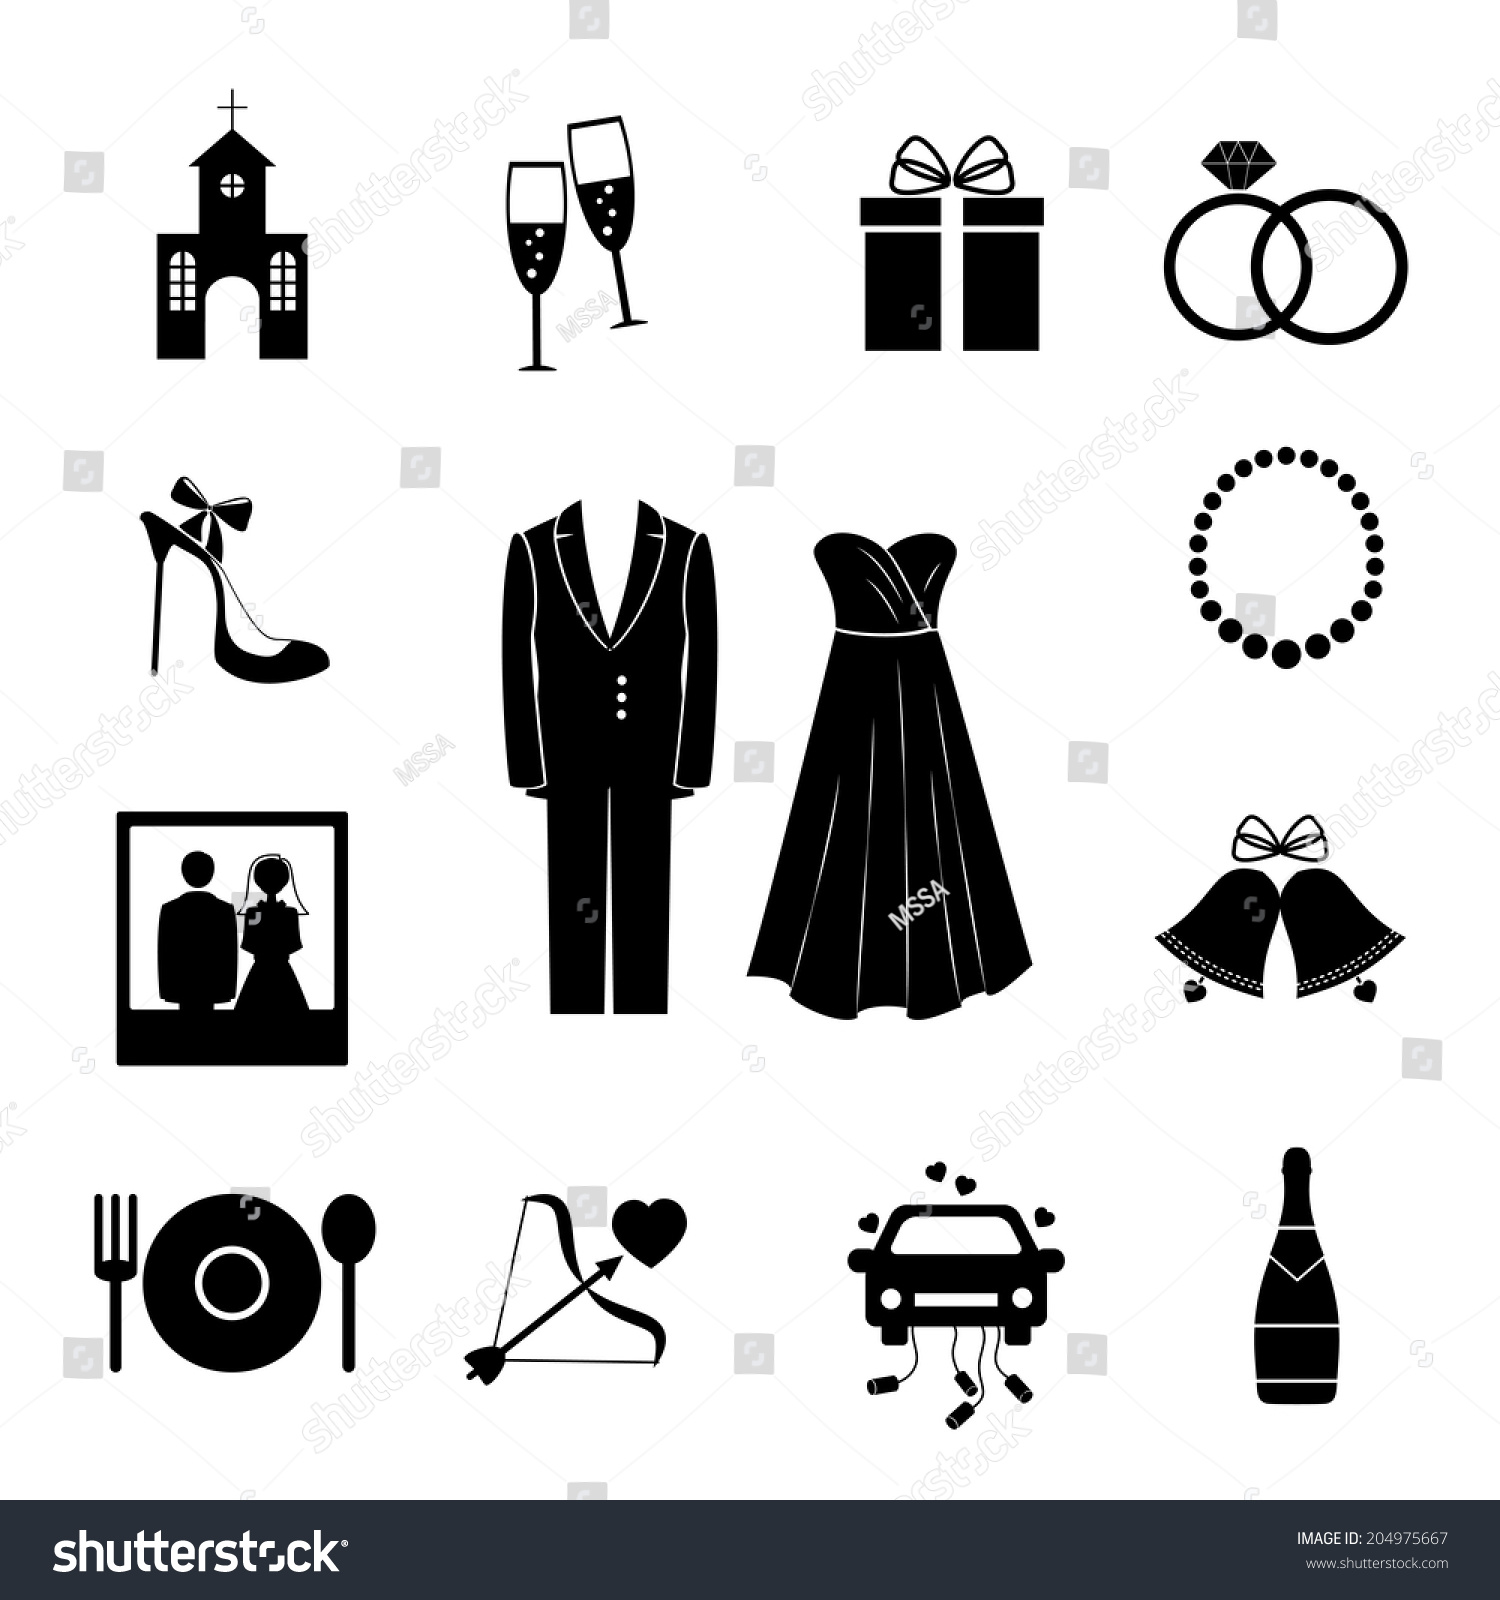 Set Of Black Silhouette Vector Wedding Icons Depicting A Church Chagne Gift Rings Shoe Bride And: And Wedding White Rings Black Sulowett At Reisefeber.org